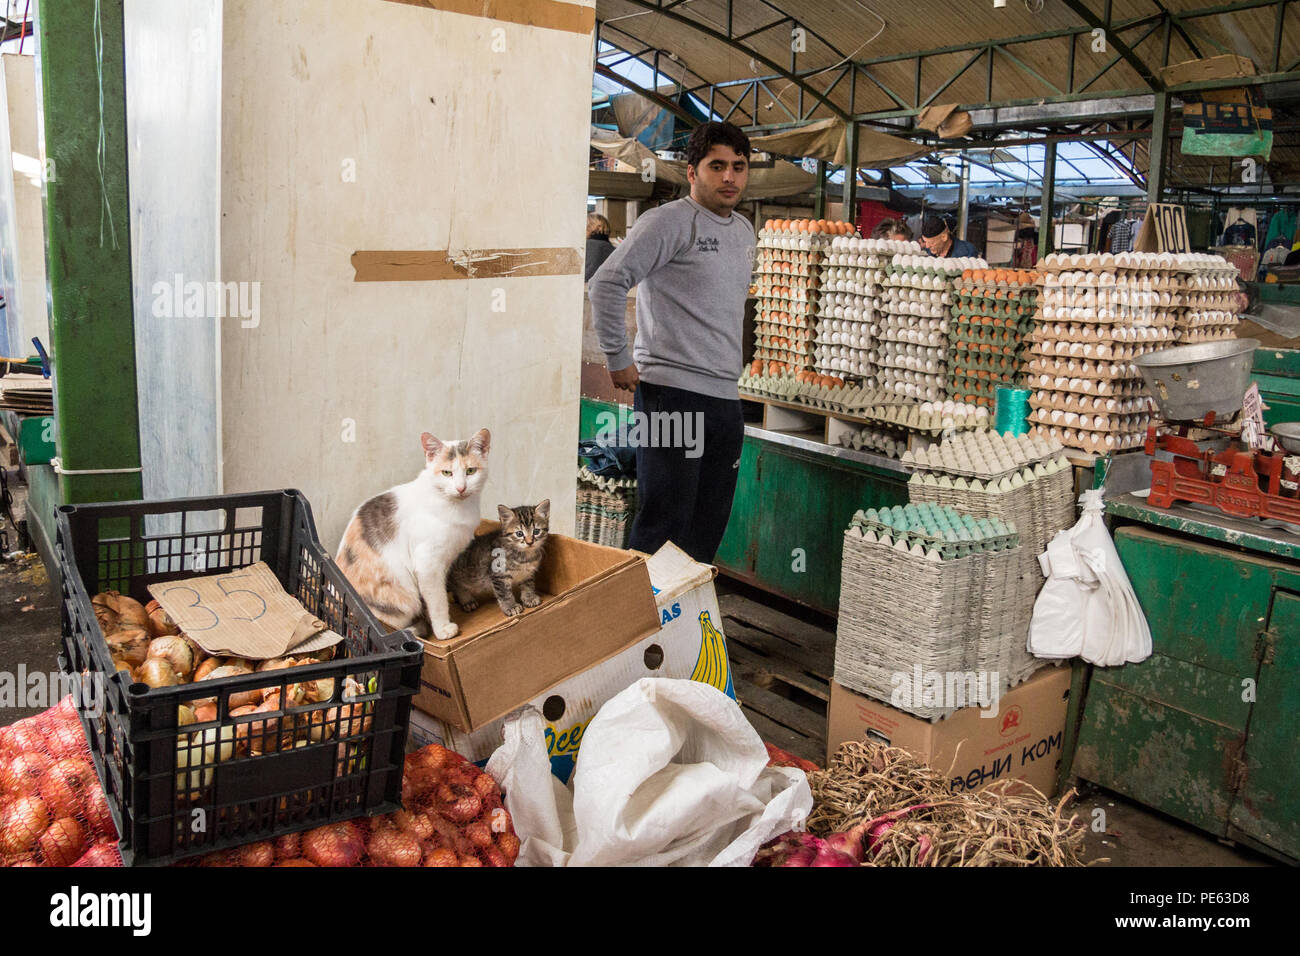 SKOPJE, MACEDONIA - OCTOBER 24, 2015: Egg seller looking at a stray cat and her kitten in the center of the Skopje Bazaar Green market, a landmark of  - Stock Image